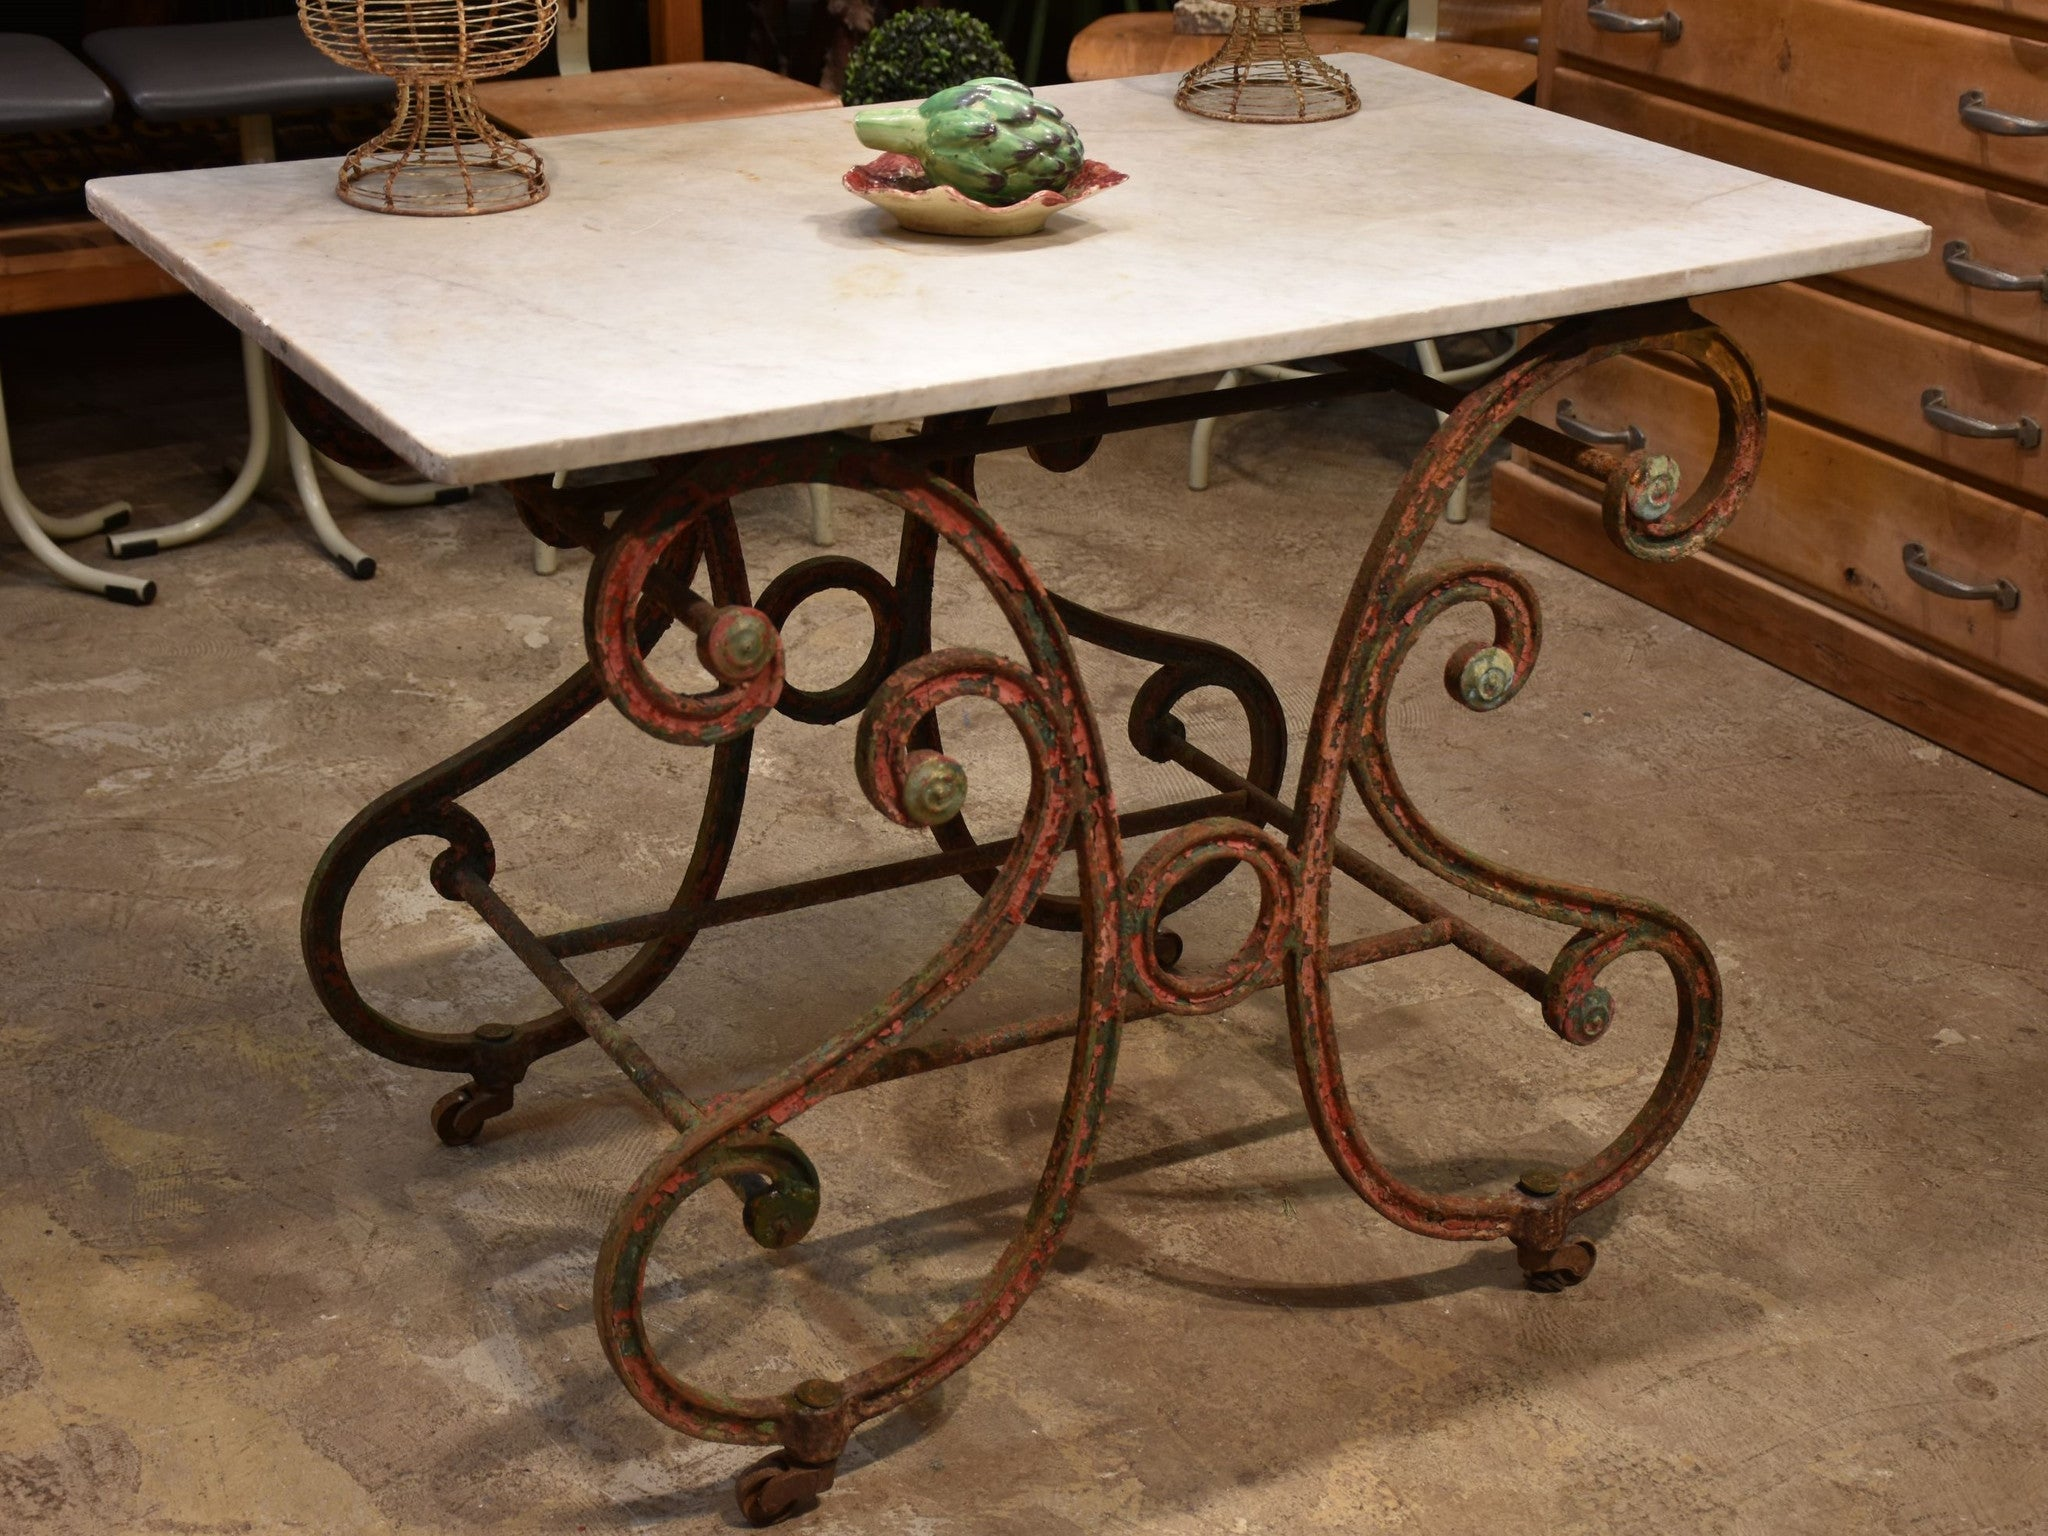 French antique butcher's table with marble top